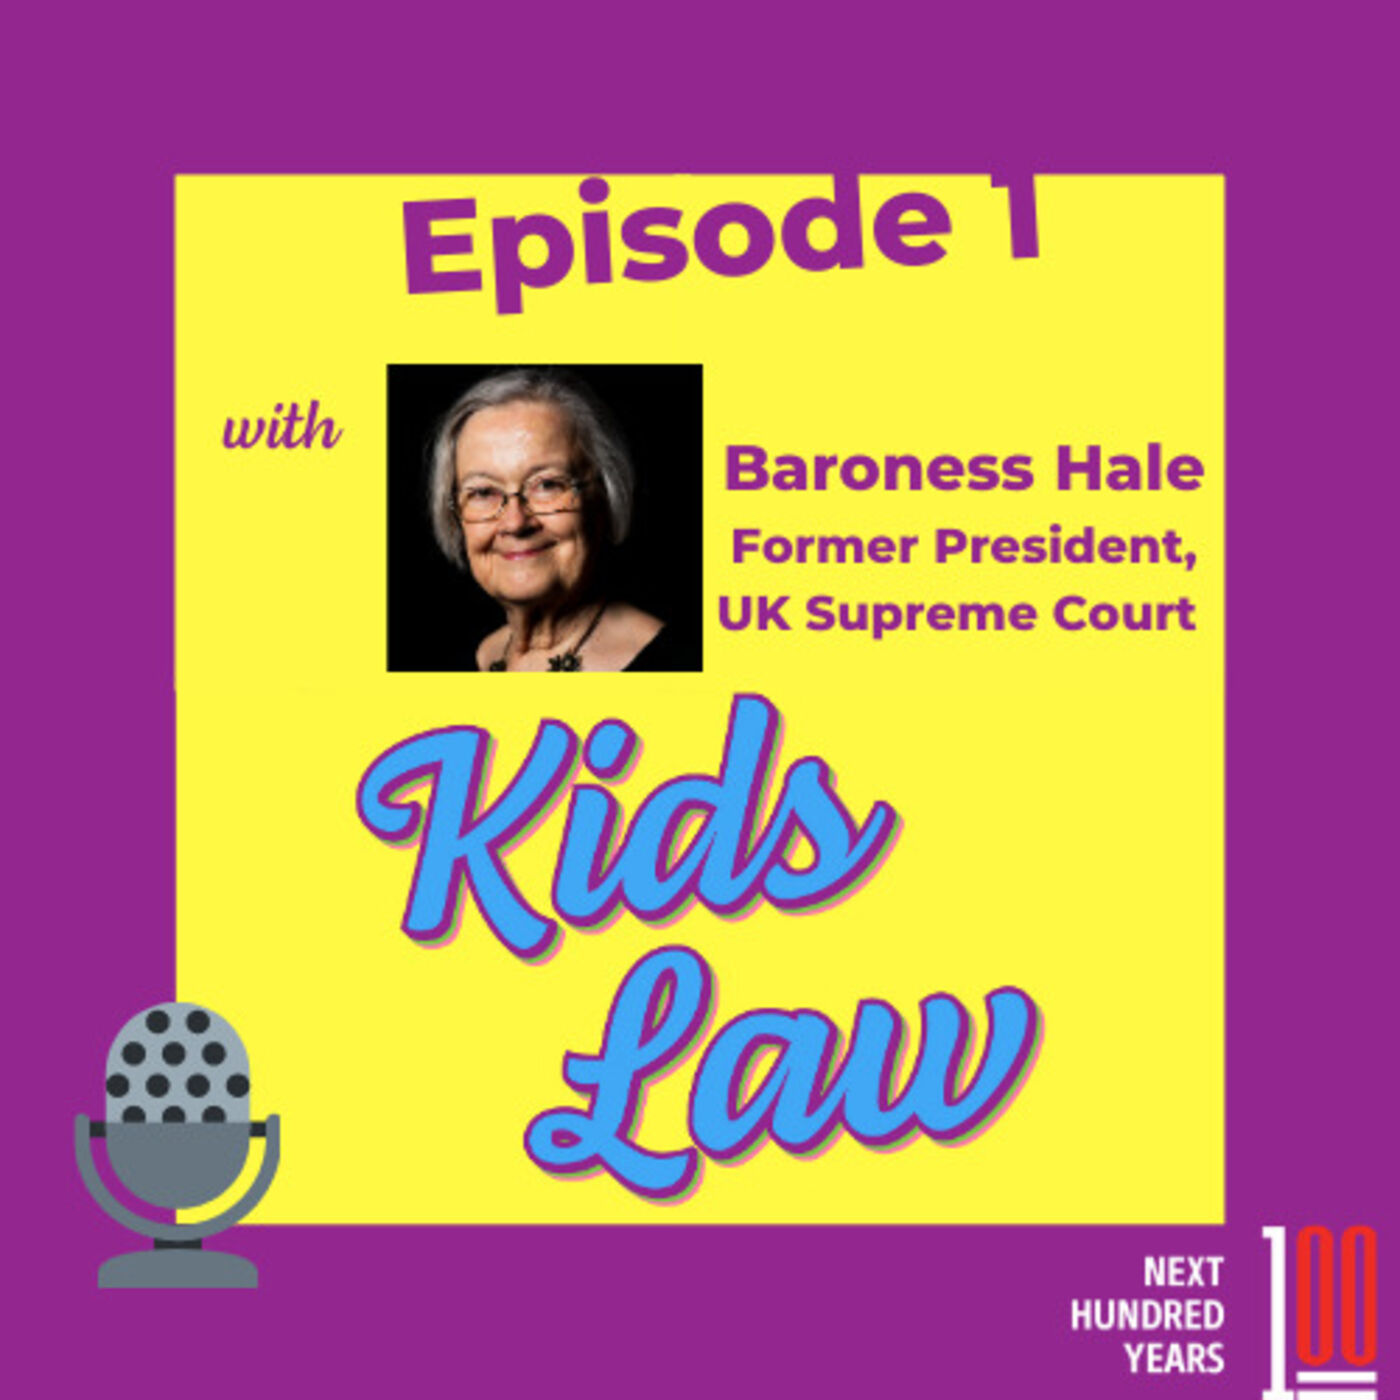 Does the law ensure the voices of children are heard?